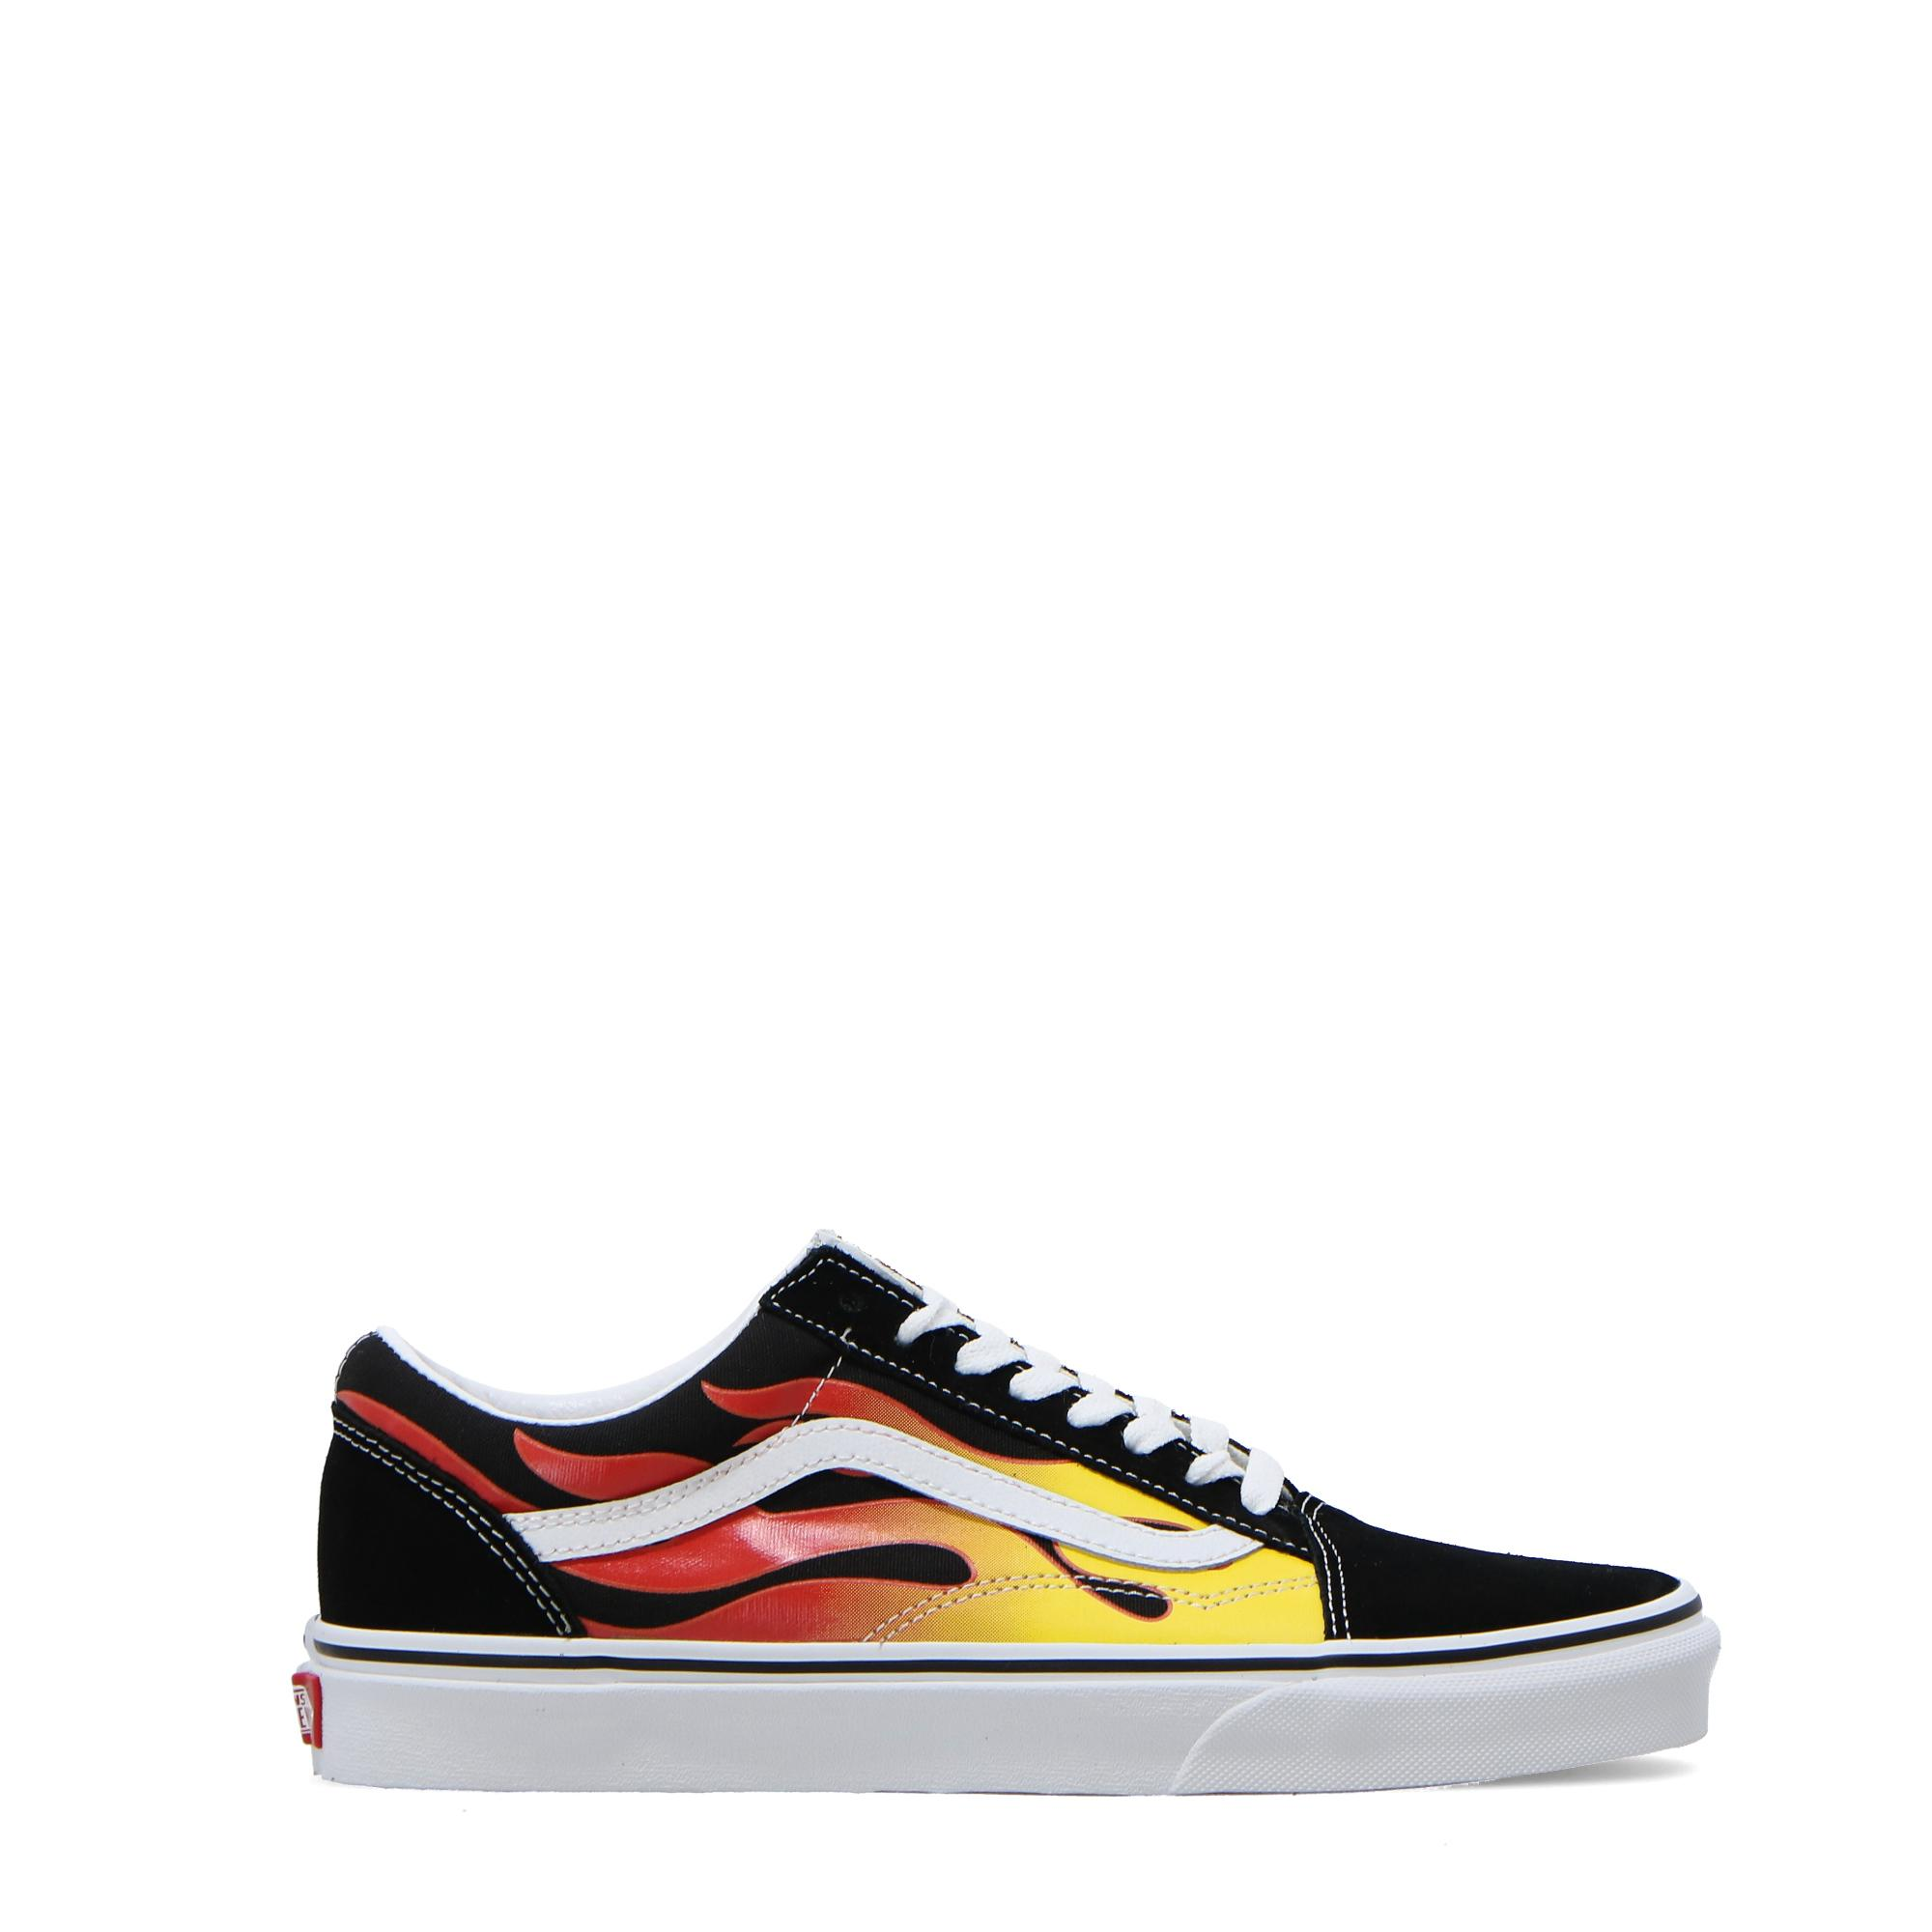 Vans Ua Old Skool Flame black black true white